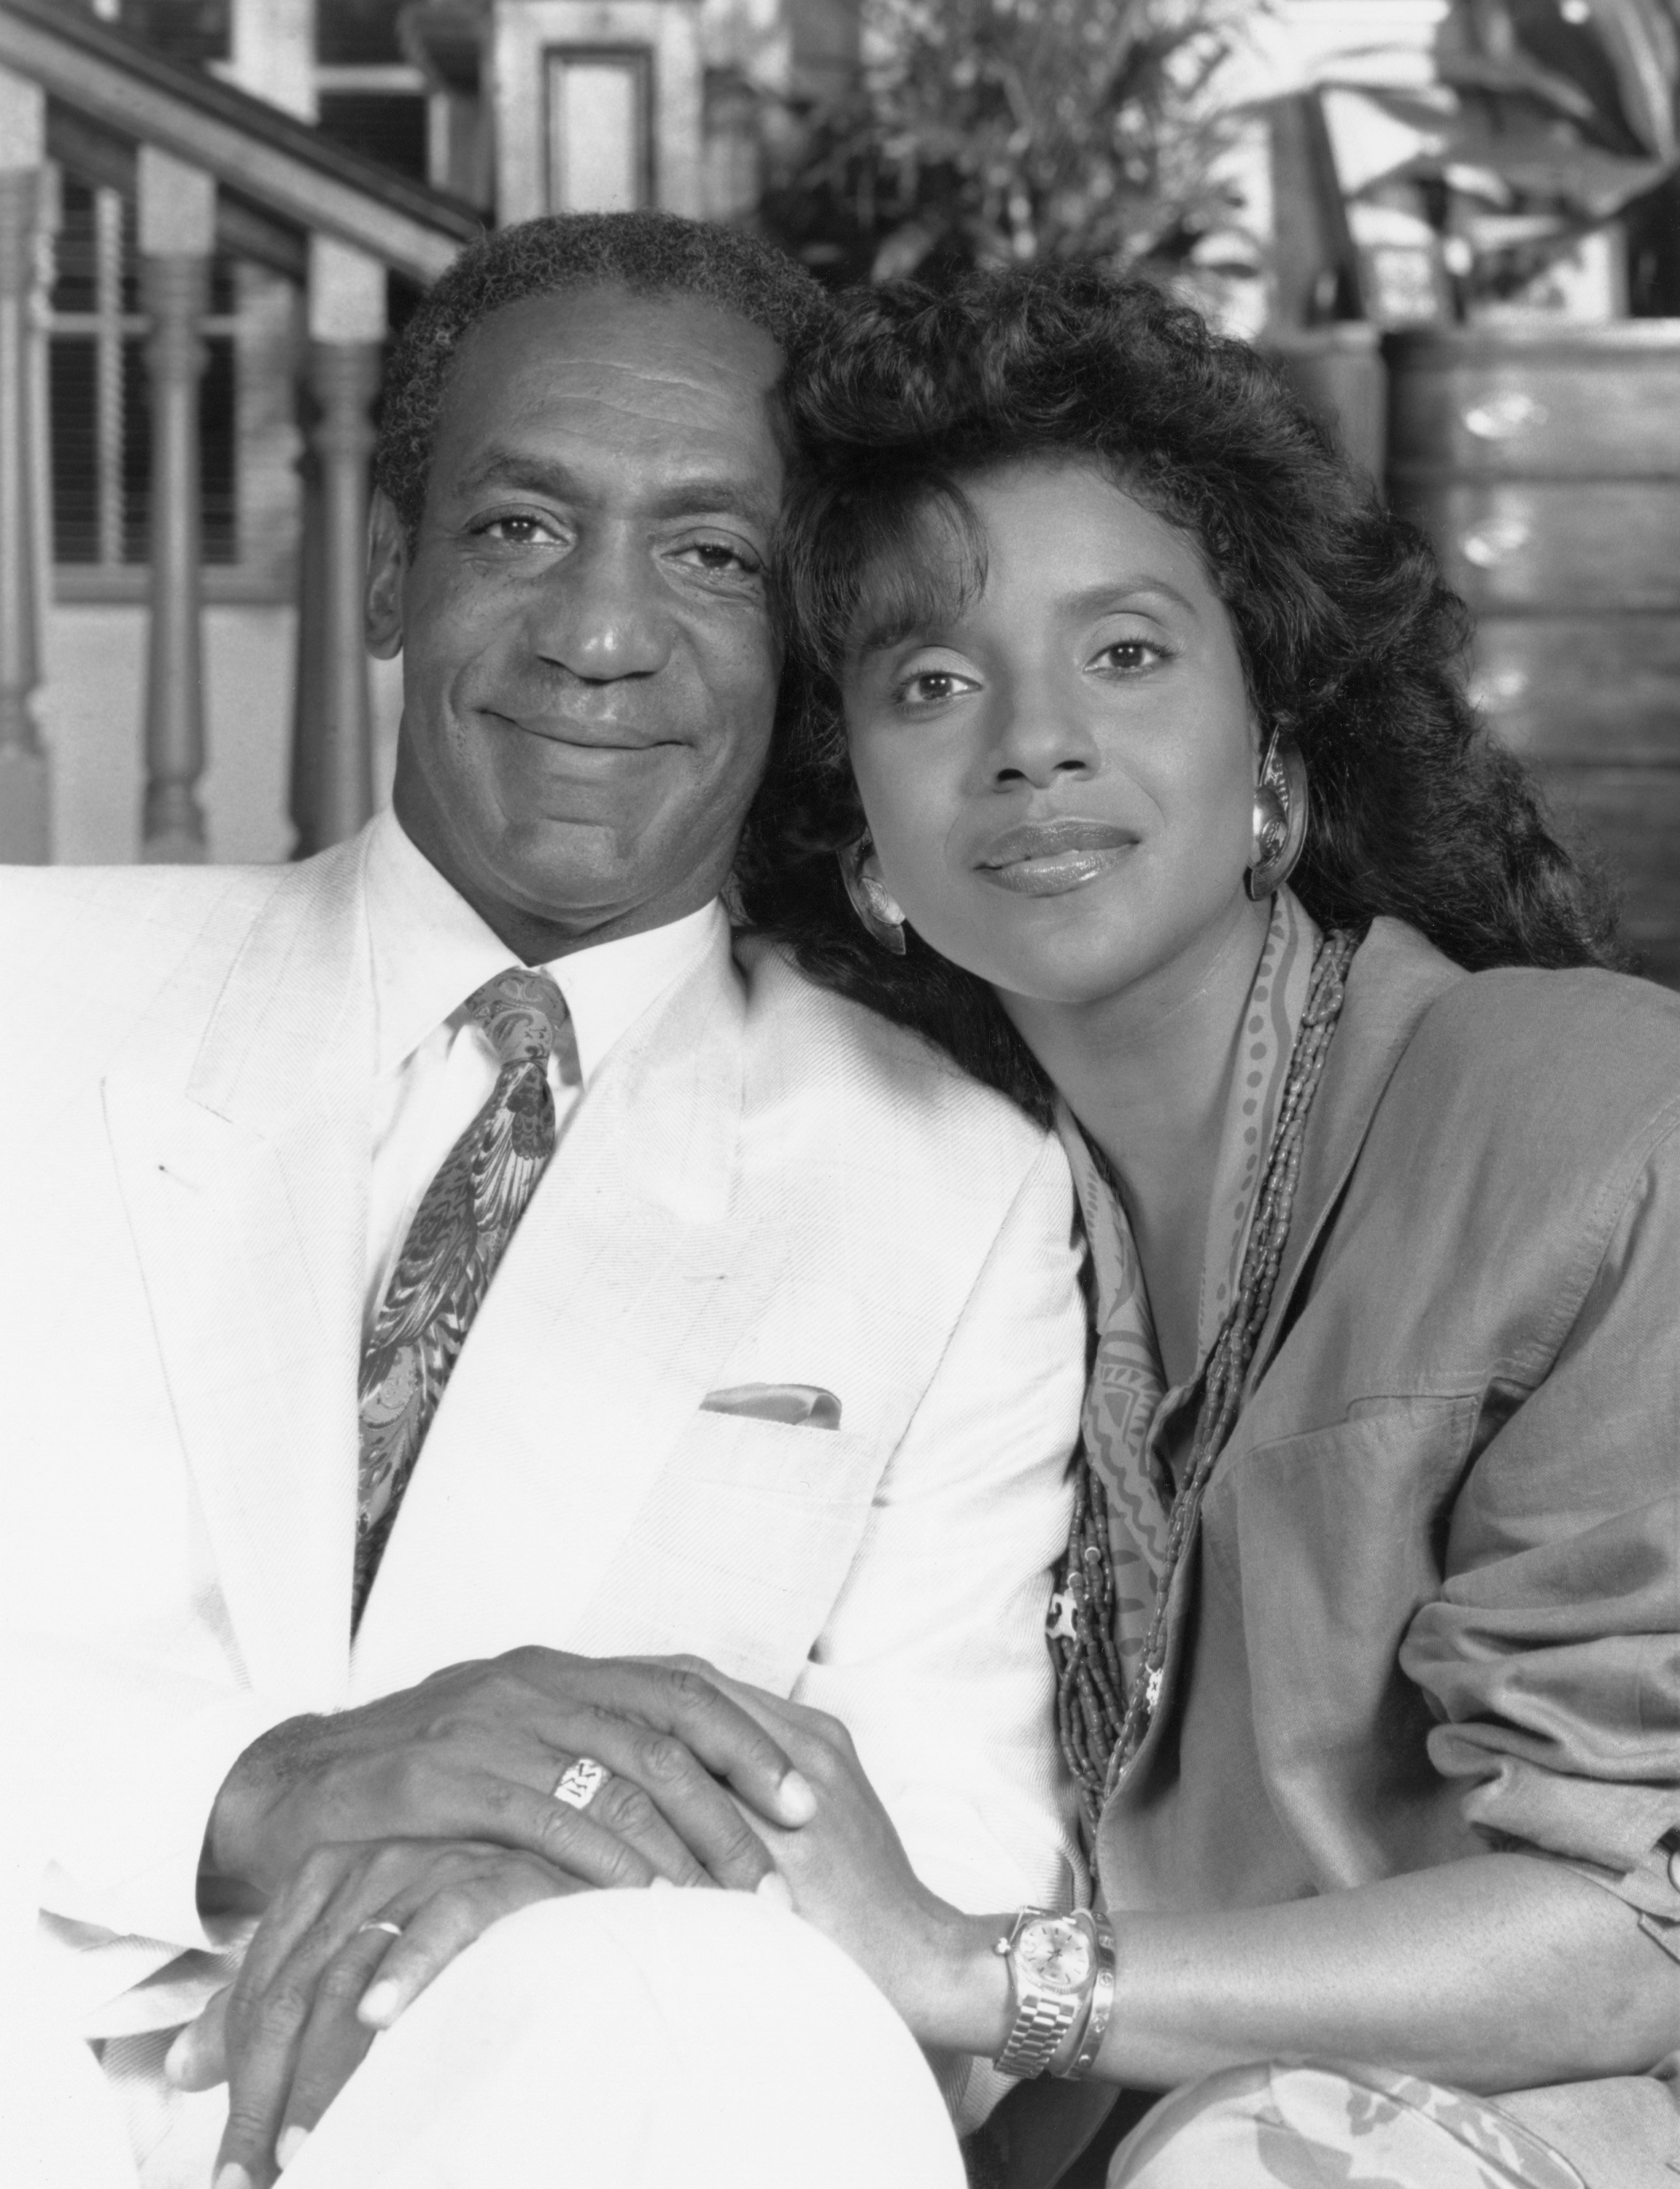 THE COSBY SHOW -- Season 4 -- Pictured: (l-r) Bill Cosby as Dr. Heathcliff 'Cliff' Huxtable, Phylicia Rashad as Clair Hanks Huxtable  | Photo: GettyImages